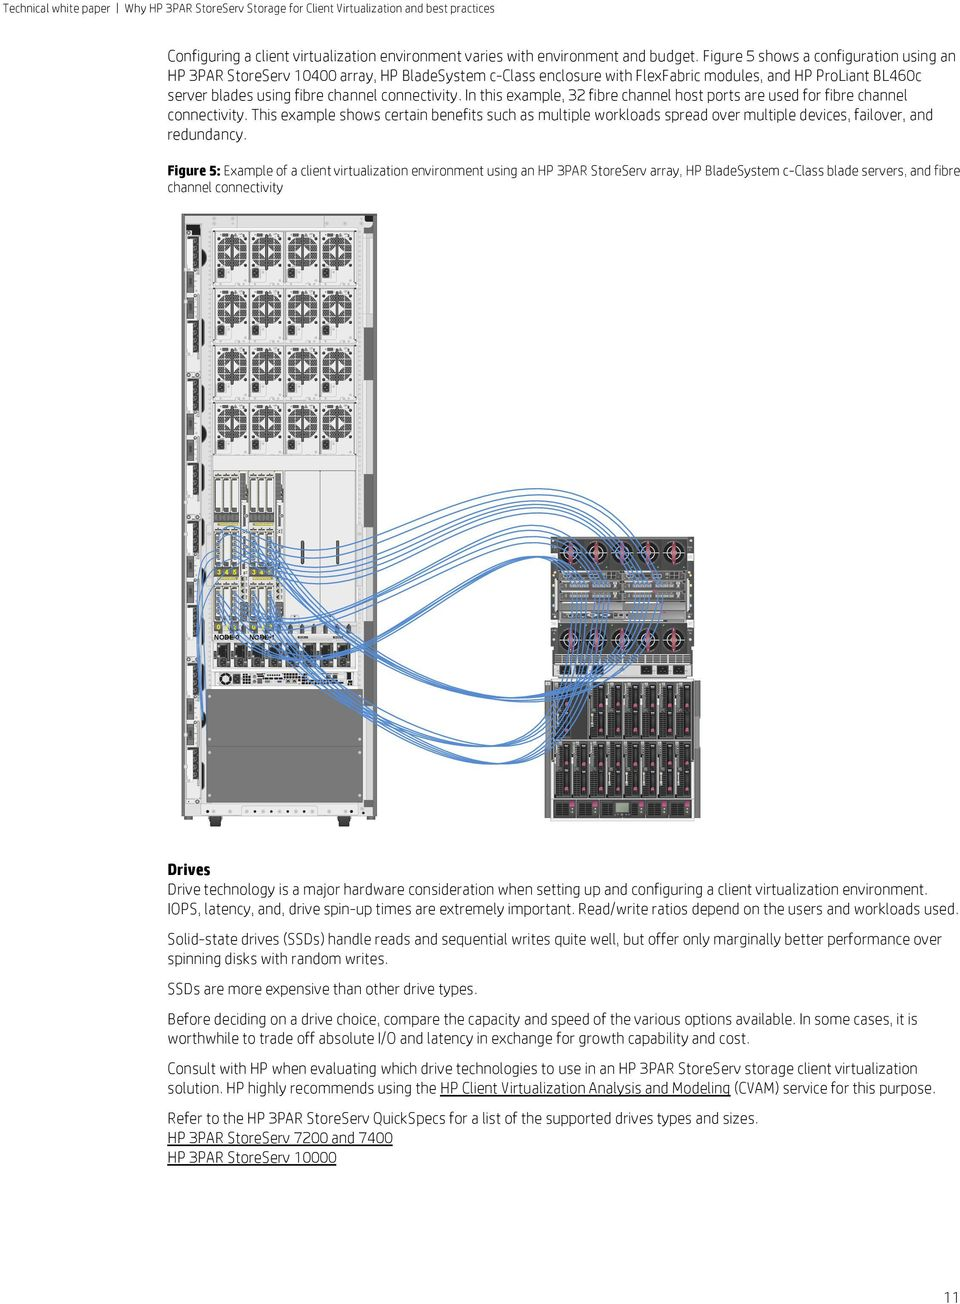 Why HP 3PAR StoreServ Storage for Client Virtualization and